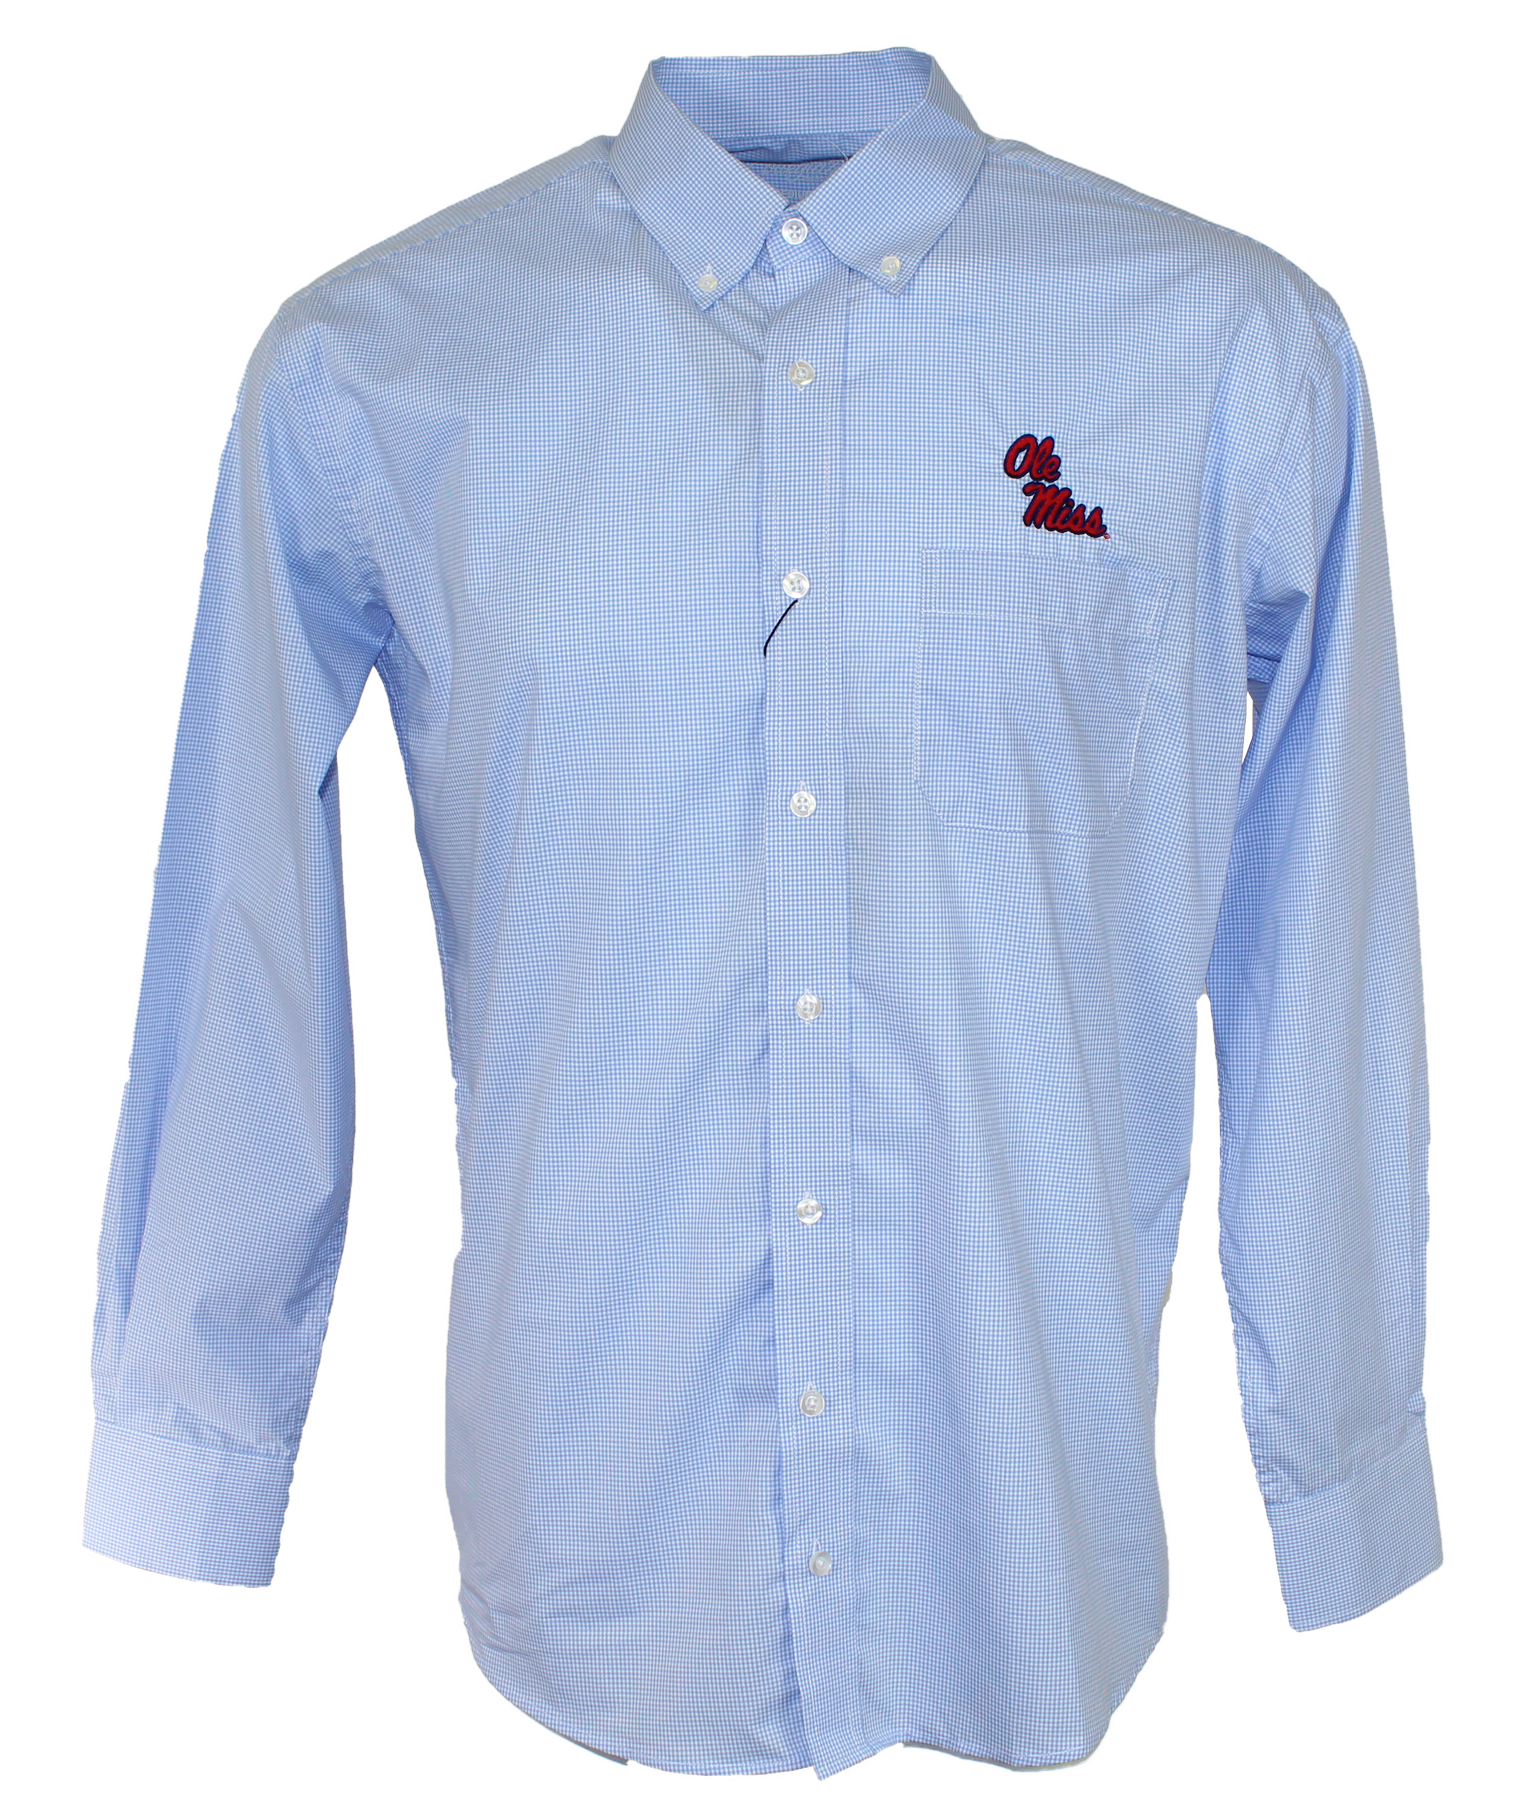 Wrinkle Free Dress Shirt Light Blue